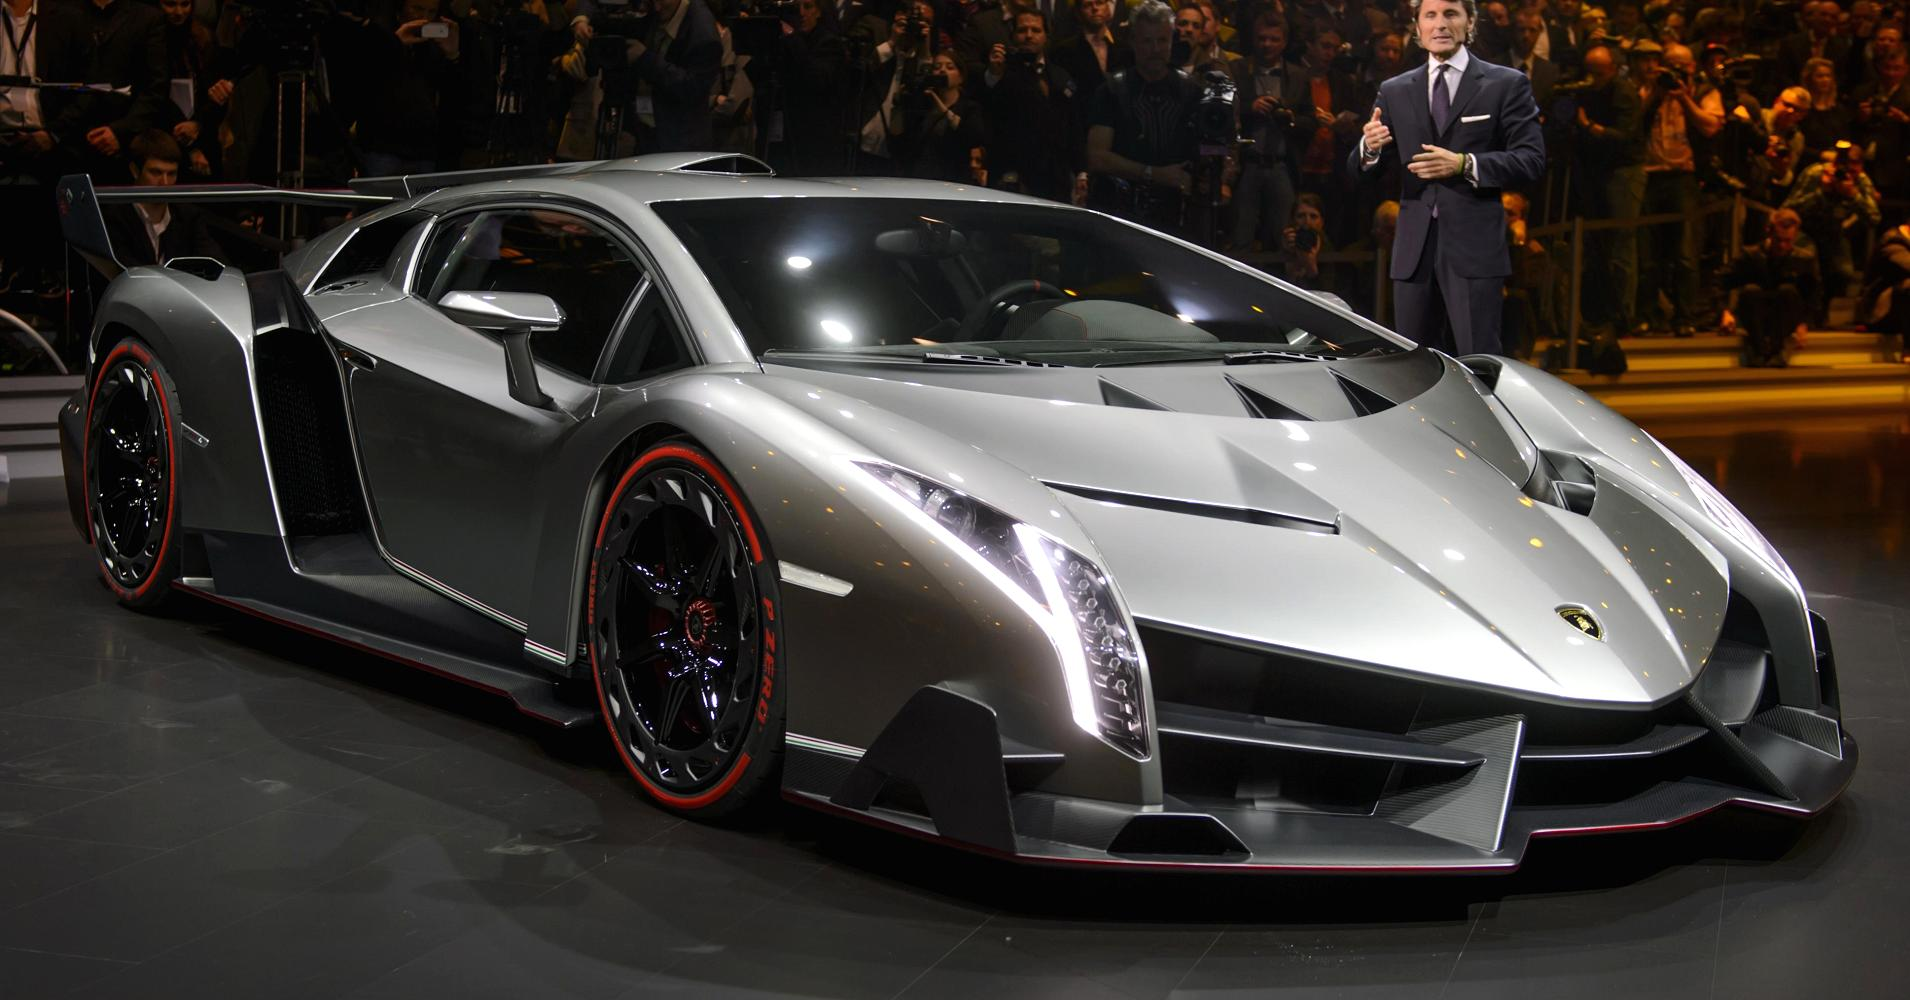 The second most expensive car on the earth lamborghini veneno roadster the luxury shown is convertible and was produced in 2014 on the occasion of 50th